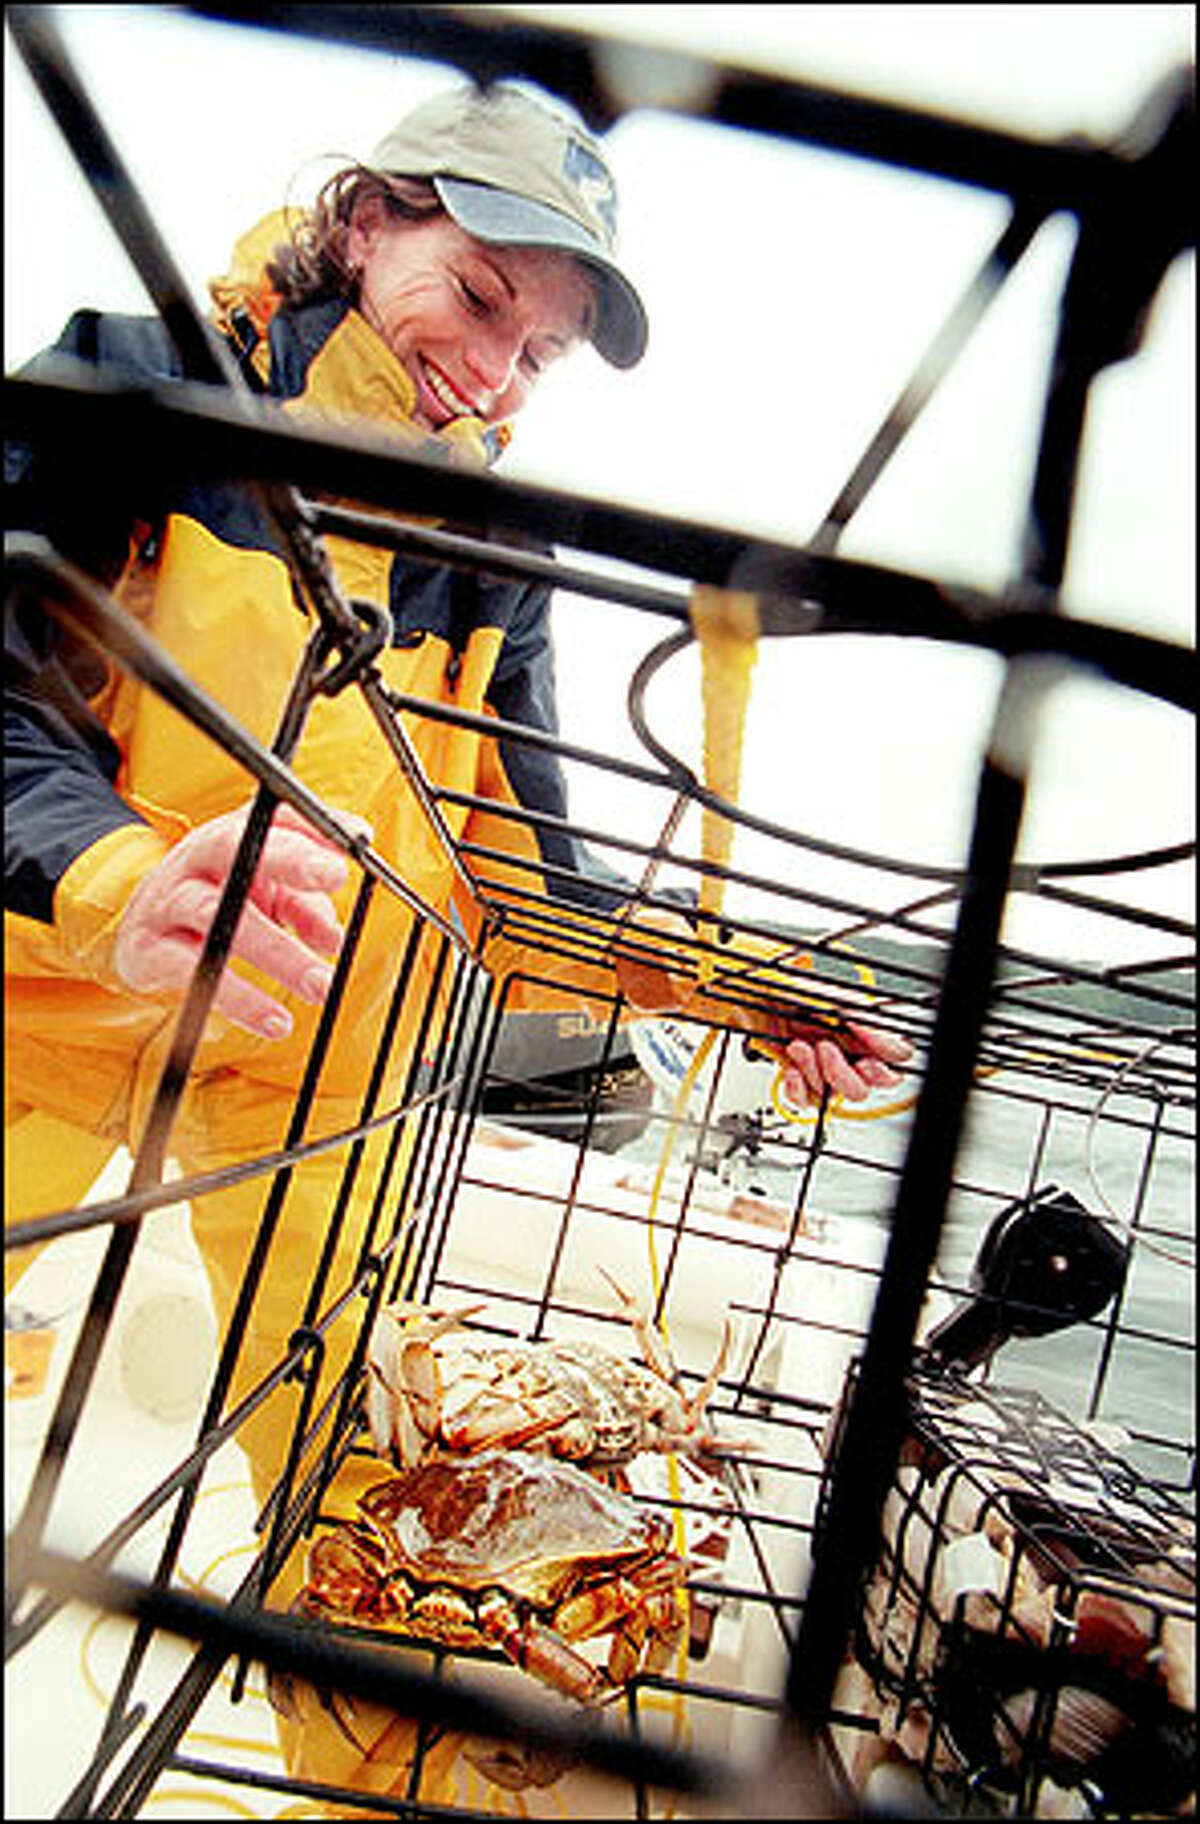 Karyl Beyerle checks her catch after pulling in a pot from lower Hood Canal near Hoodsport.